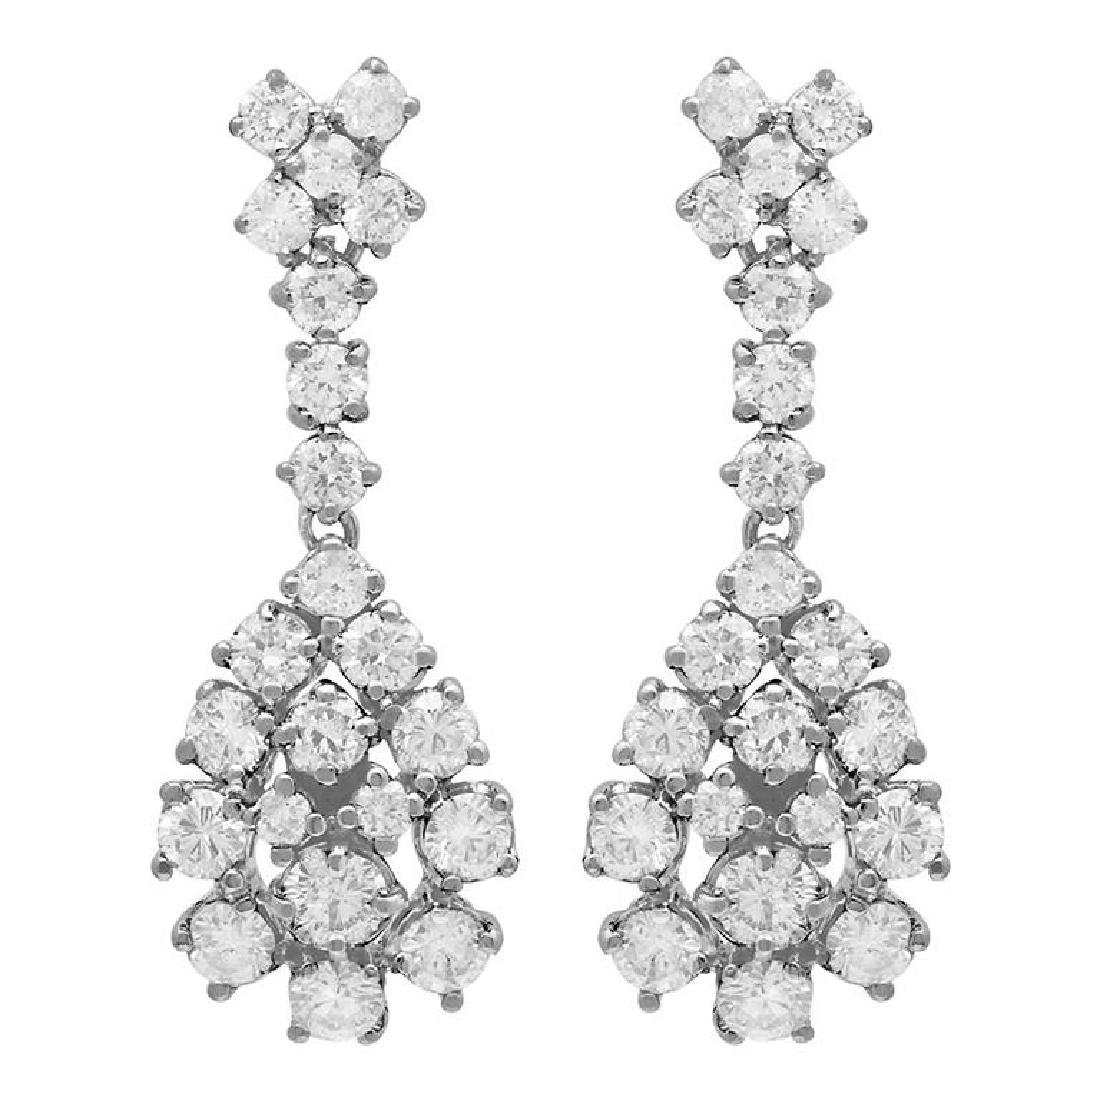 14k White Gold 3.10ct Diamond Earrings